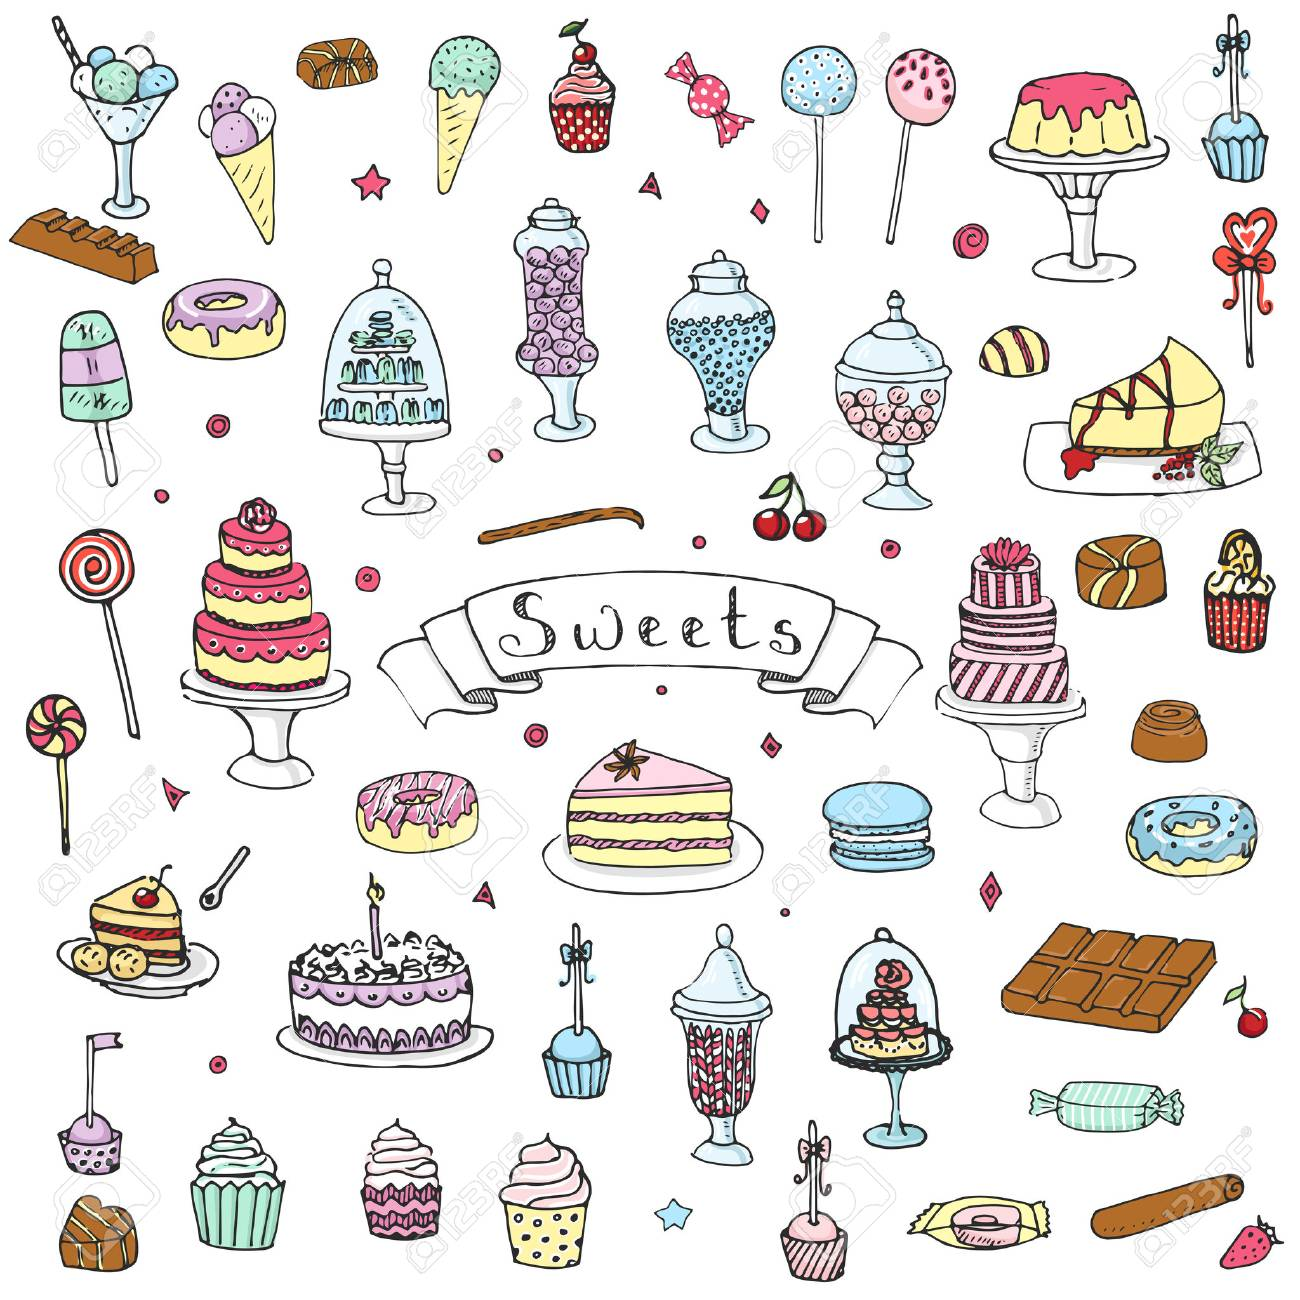 Hand drawn doodle Sweets set Vector illustration Sketchy Sweet food icons collection - 54971907